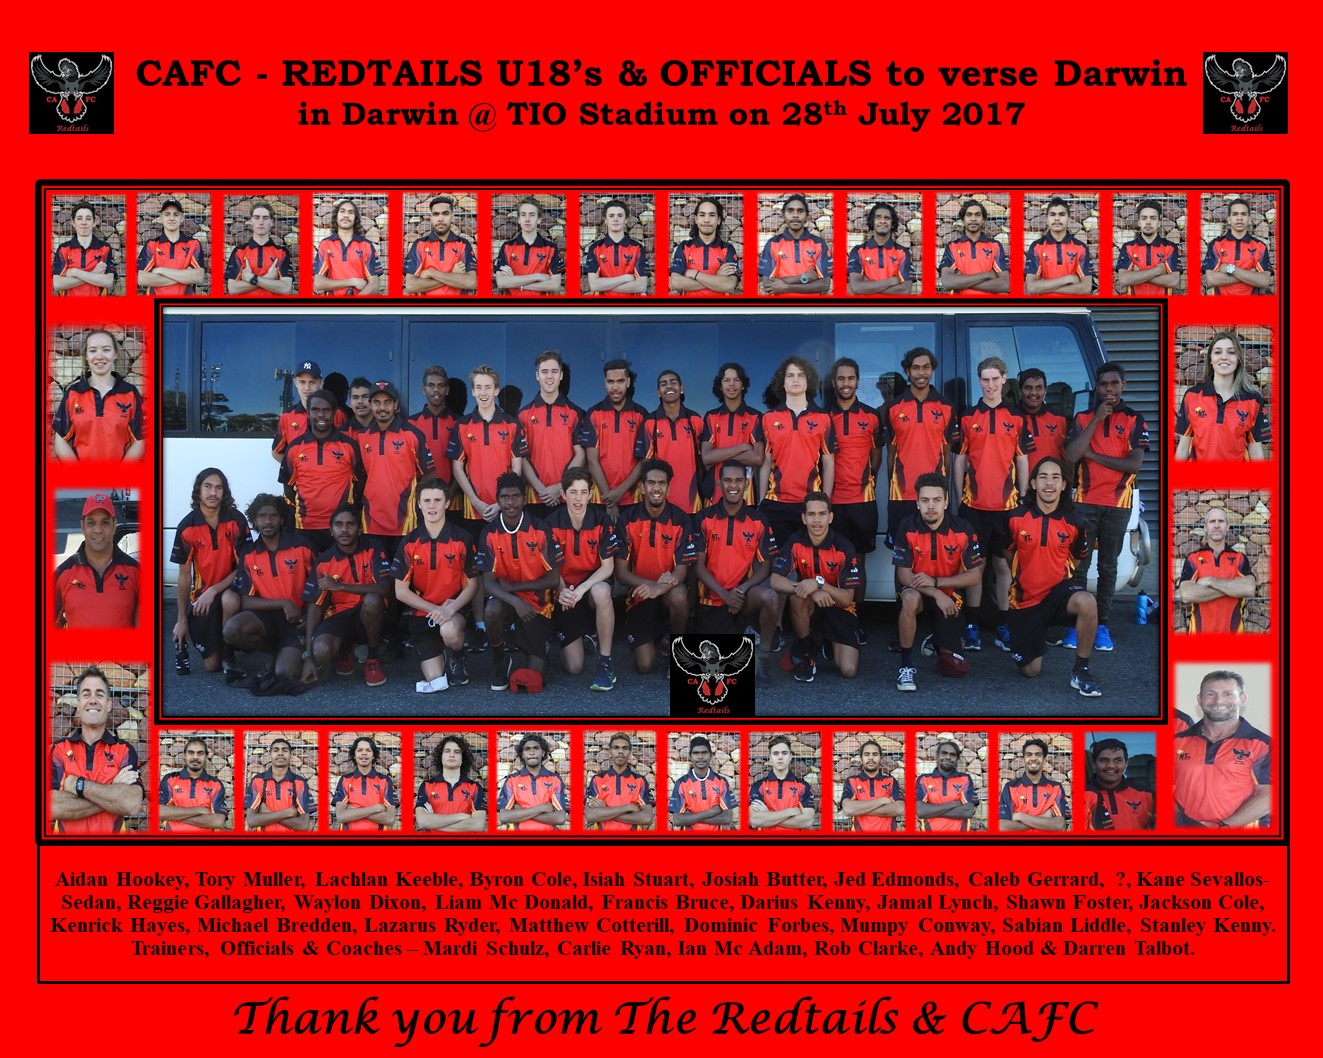 Redtails U18 - 29th July 2017 to Darwin-collage